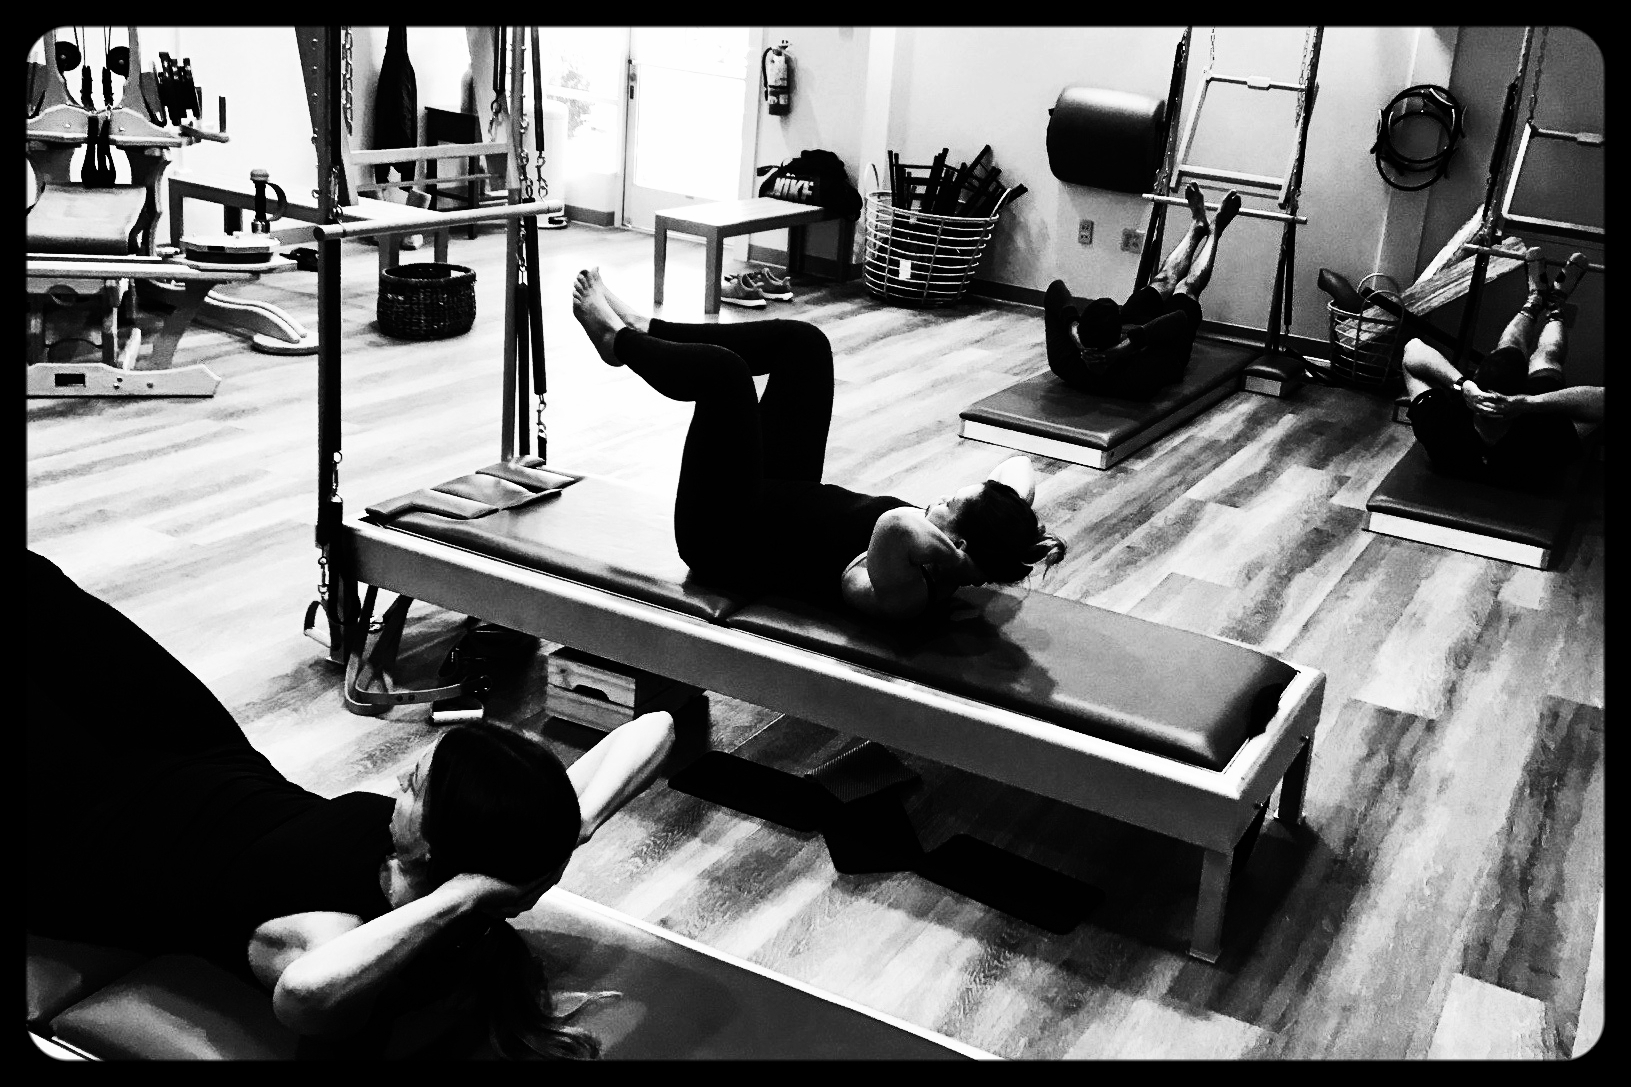 Pilates Mat - The heart and soul of the Pilates method!Learn the REAL mat the Mat that Joe invented himself and has sparked an entire fitness revolution.Work the body in all planes of motion with nothing but your own body weight and gravity. Classes is limited to 6 participants.